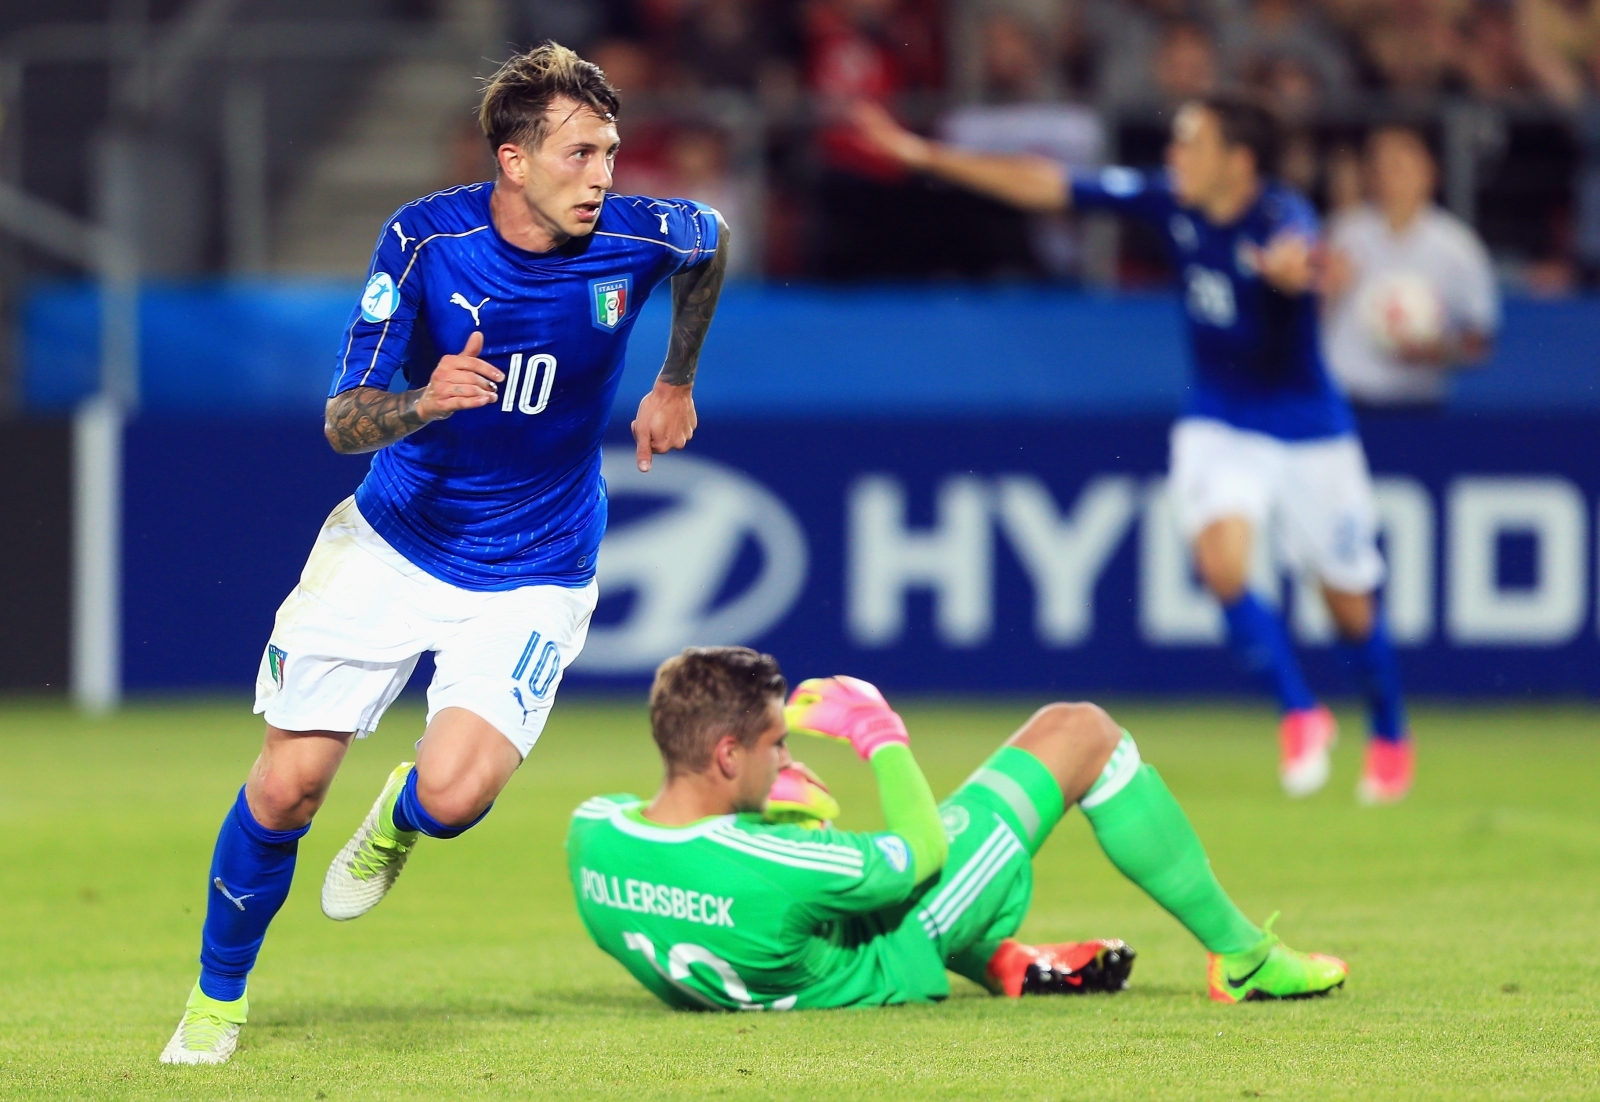 Juventus sign Fiorentina striker Bernardeschi for 40 million euros